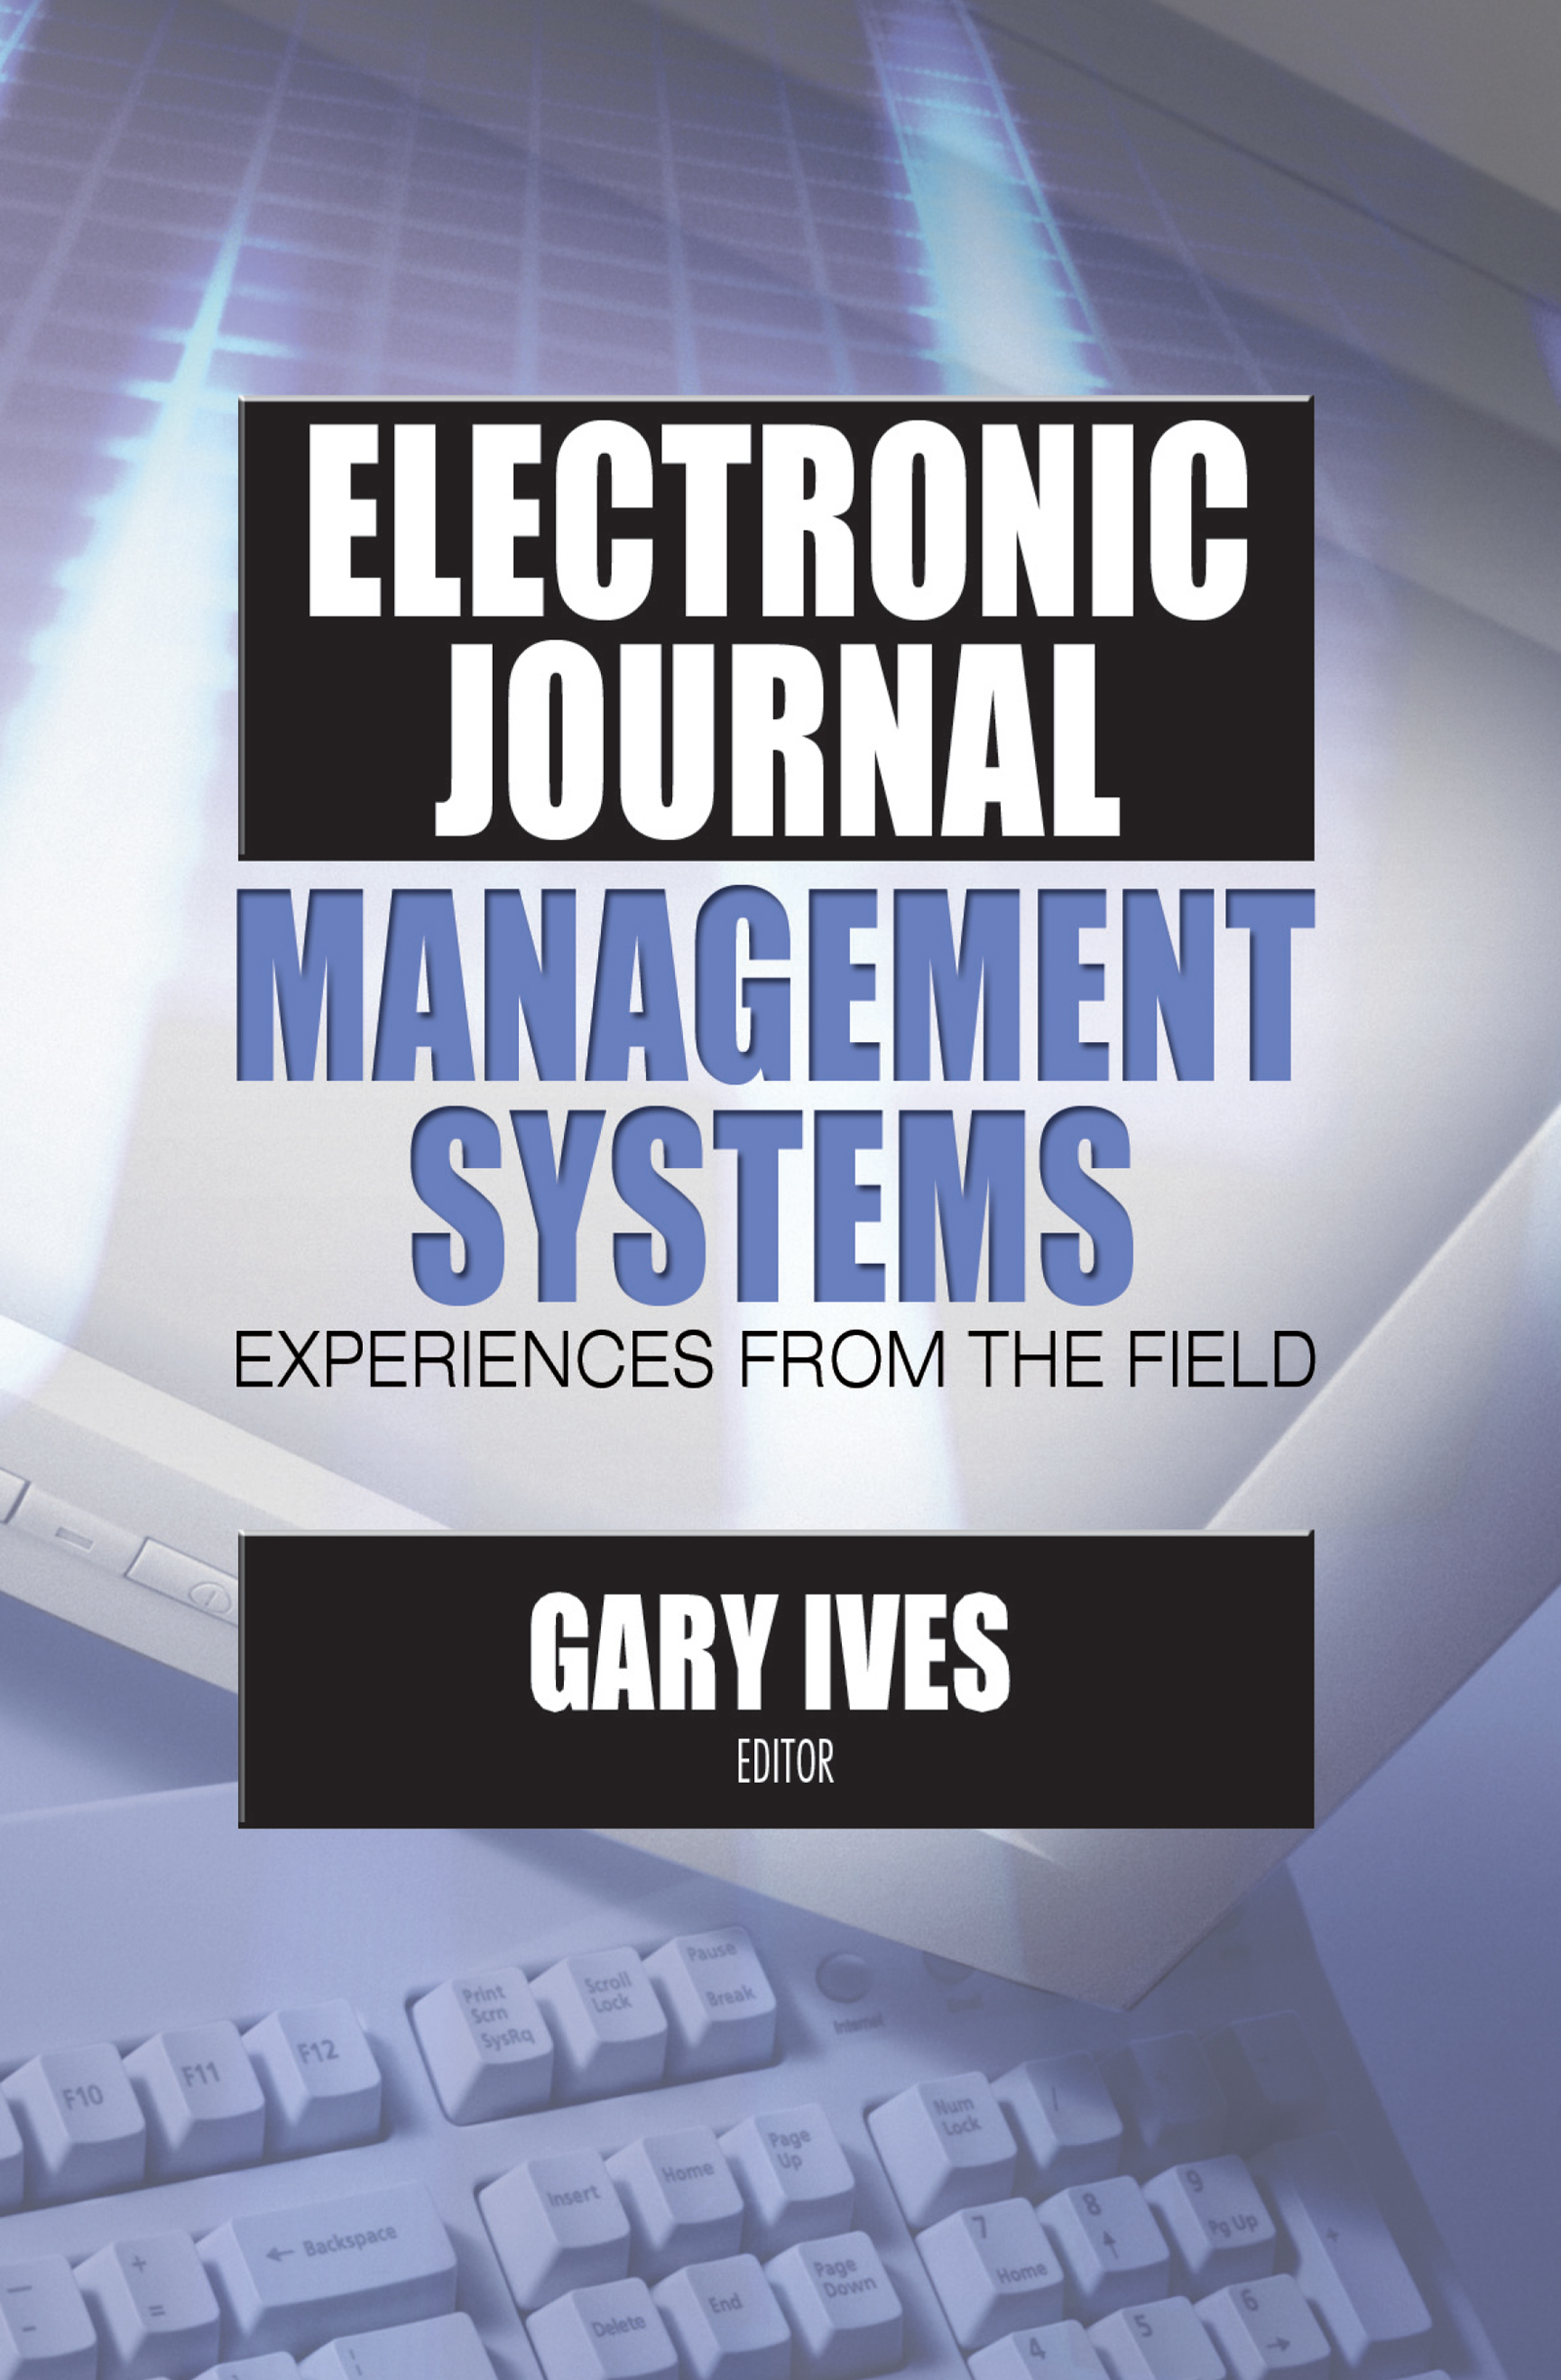 Electronic Journal Management Systems: Experiences from the Field book cover